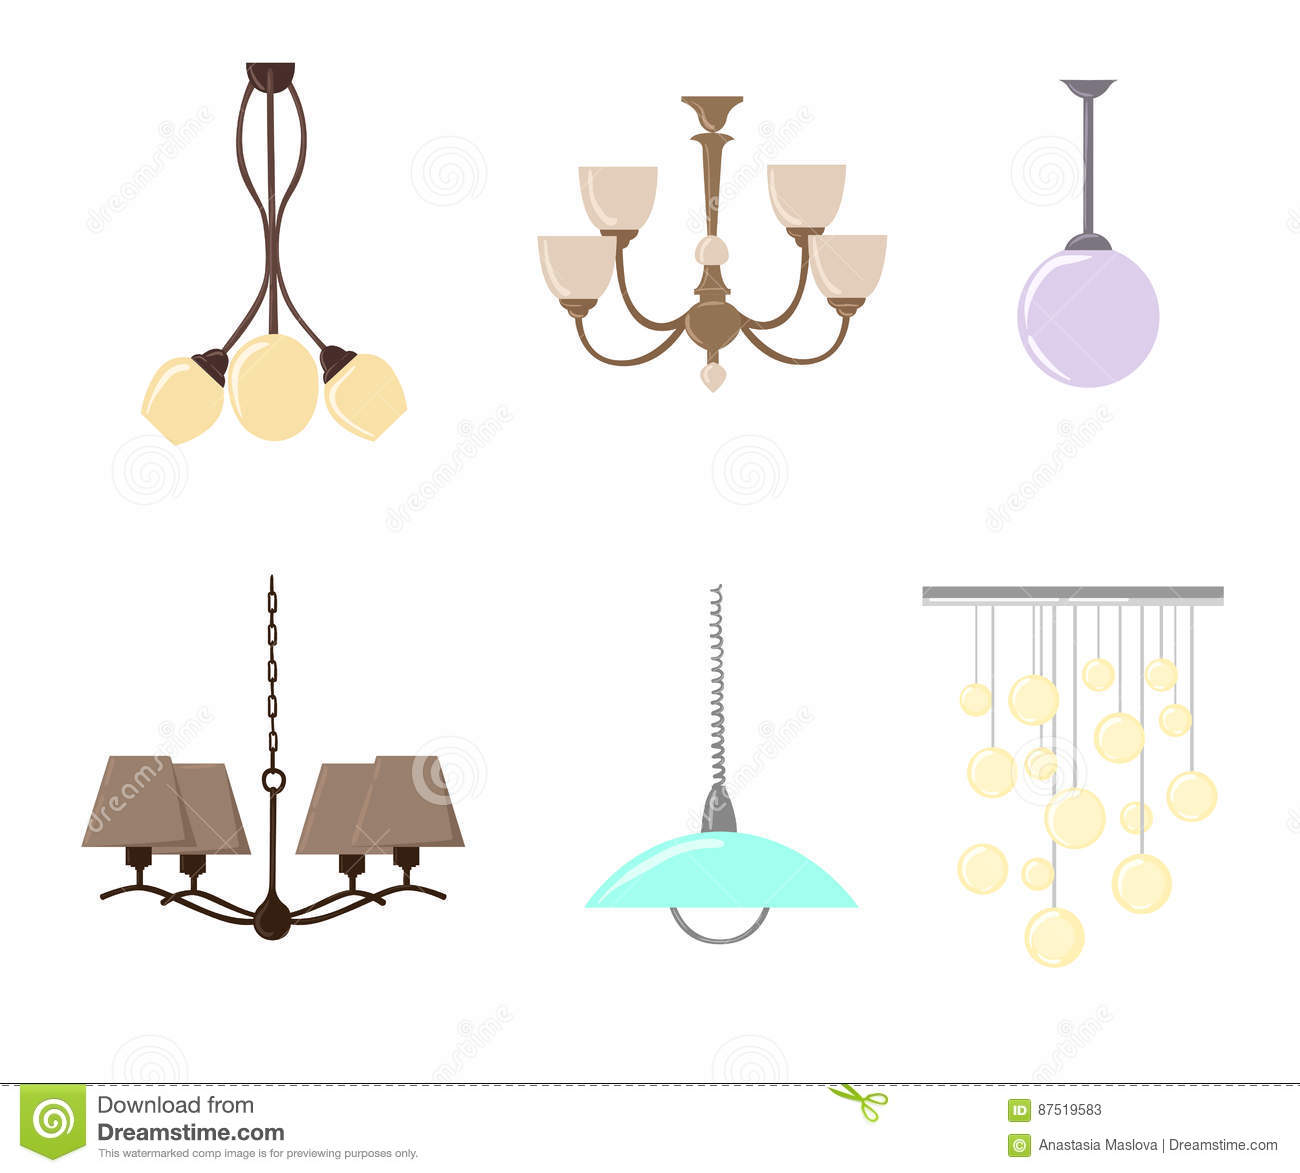 Hanging Lamp Vector: Chandelier Silhouette Isolated On White Background. Set Of